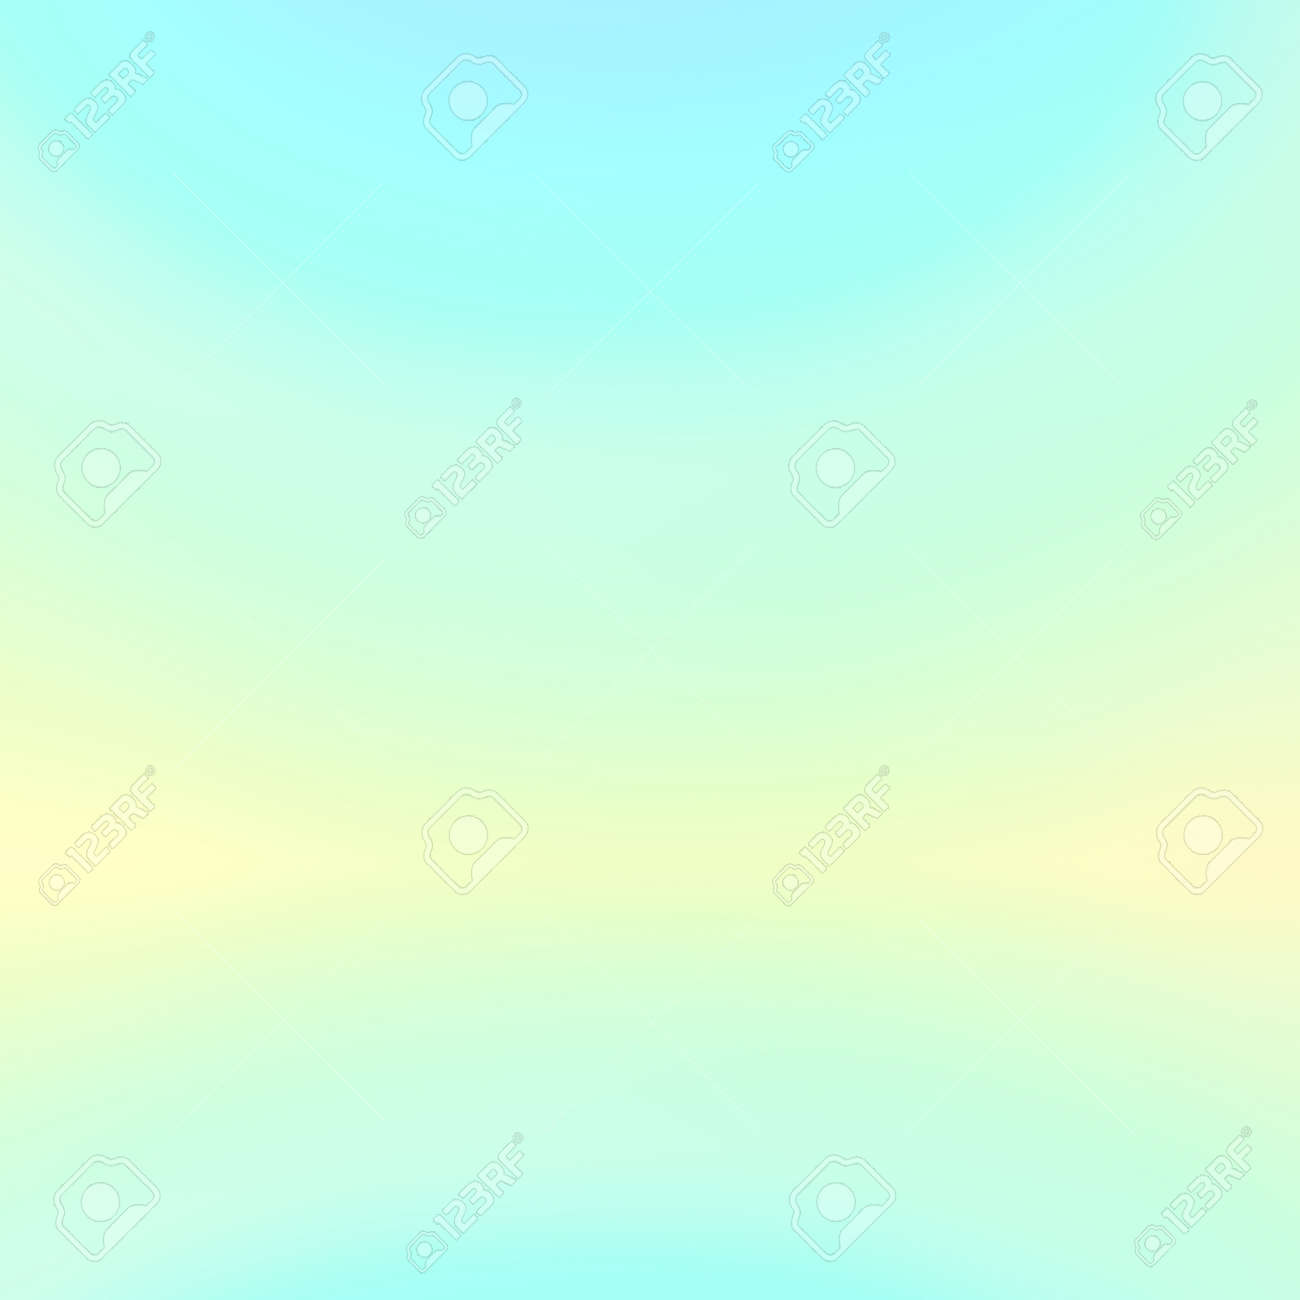 Fullsize Of Light Teal Color